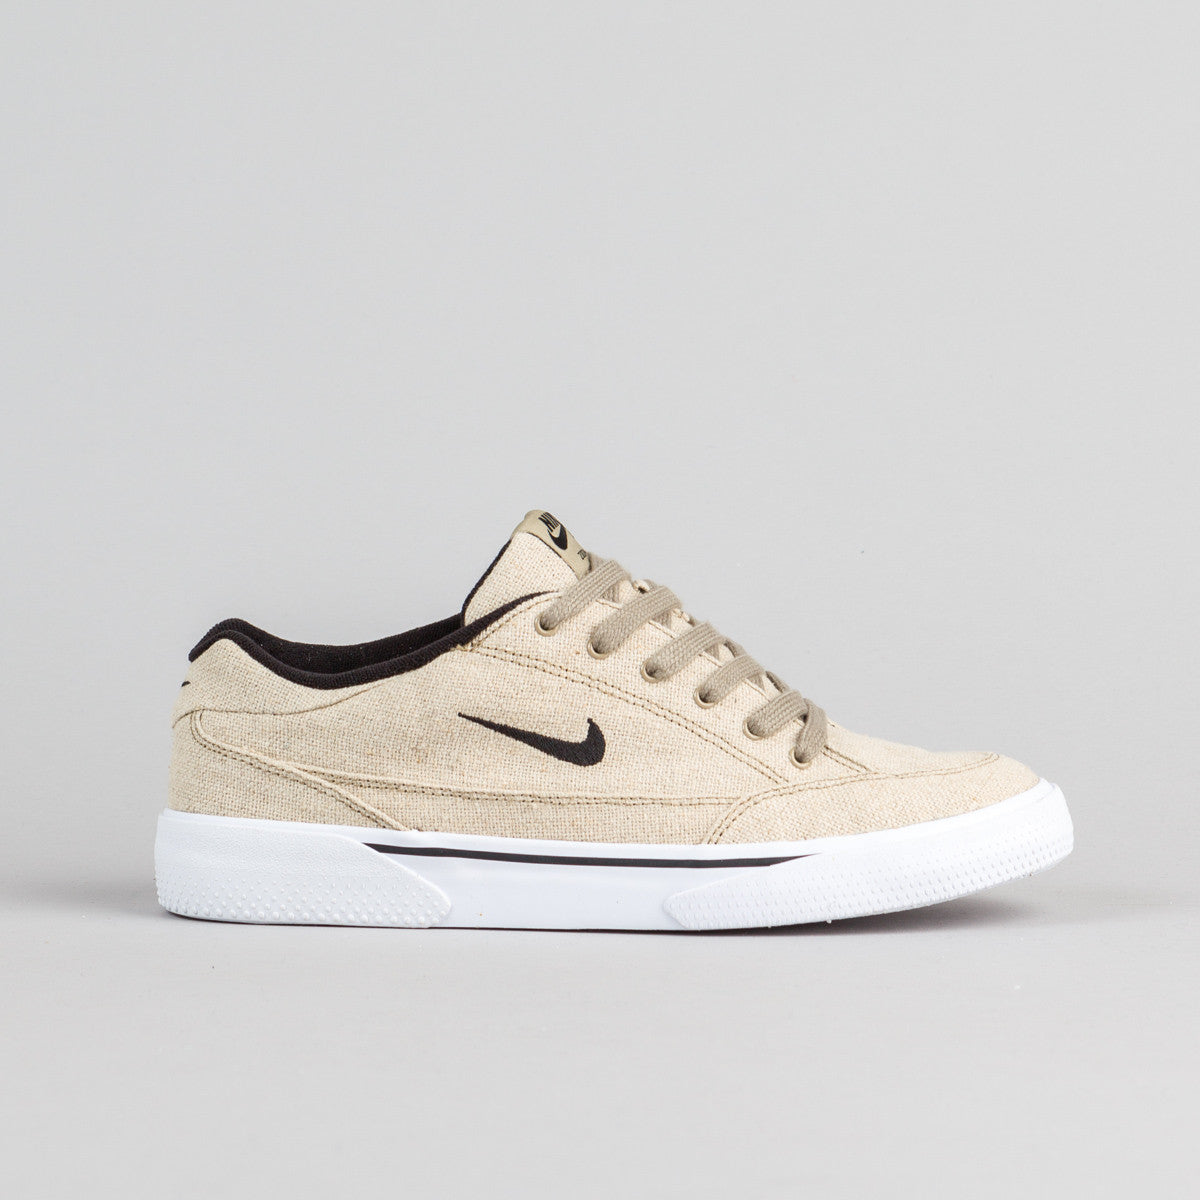 Nike SB Zoom GTS Shoes QS